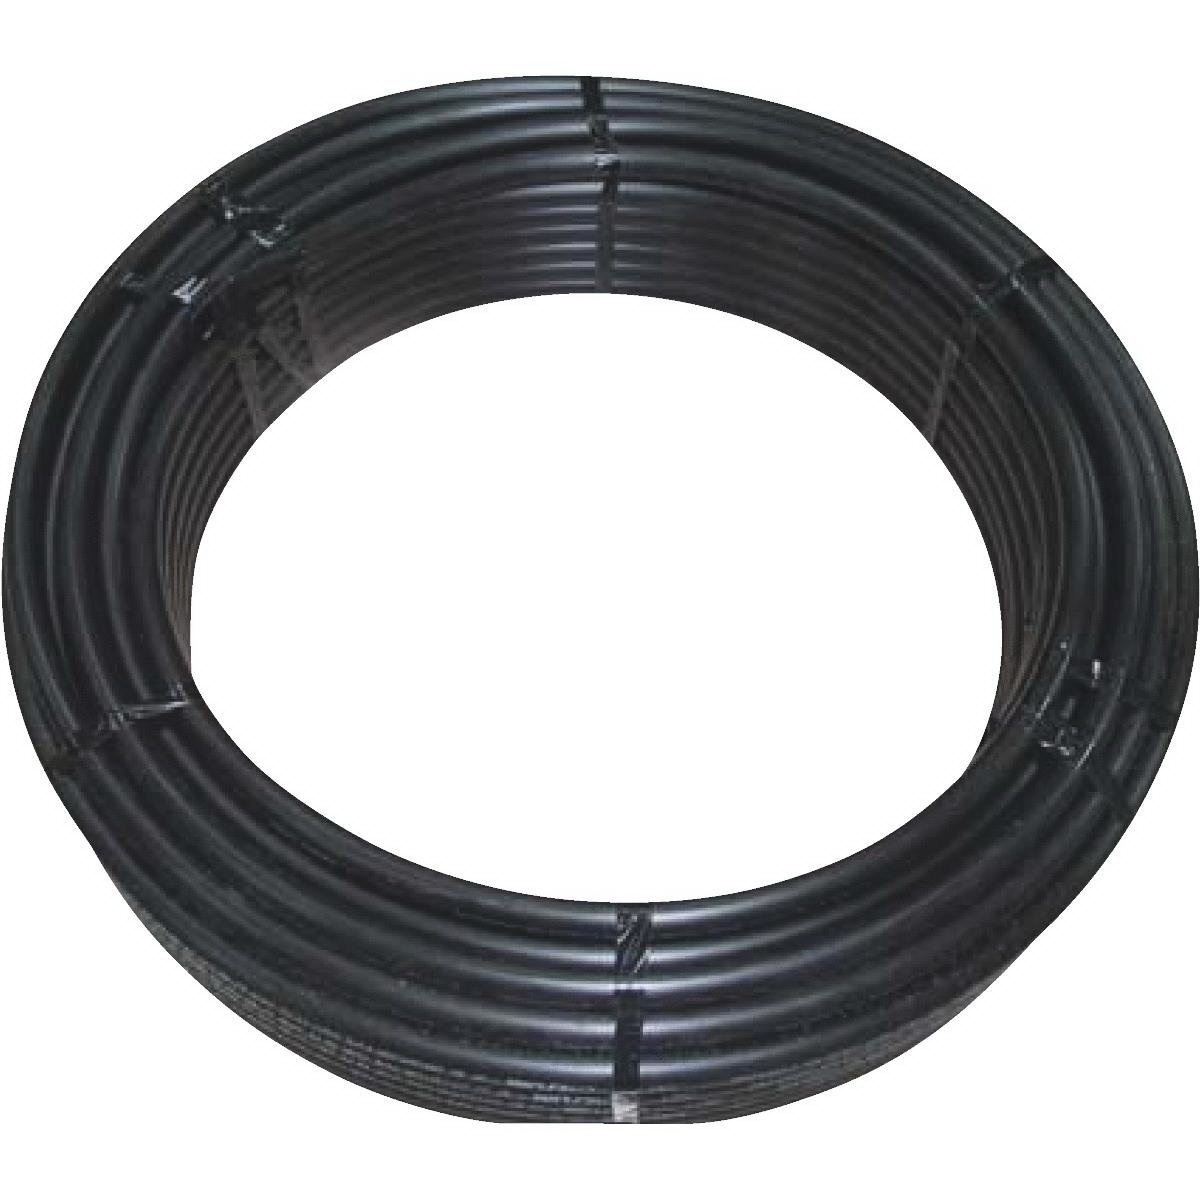 CRESLINE® Black Polyethylene Flexible Pipe, 500 ft, CTS